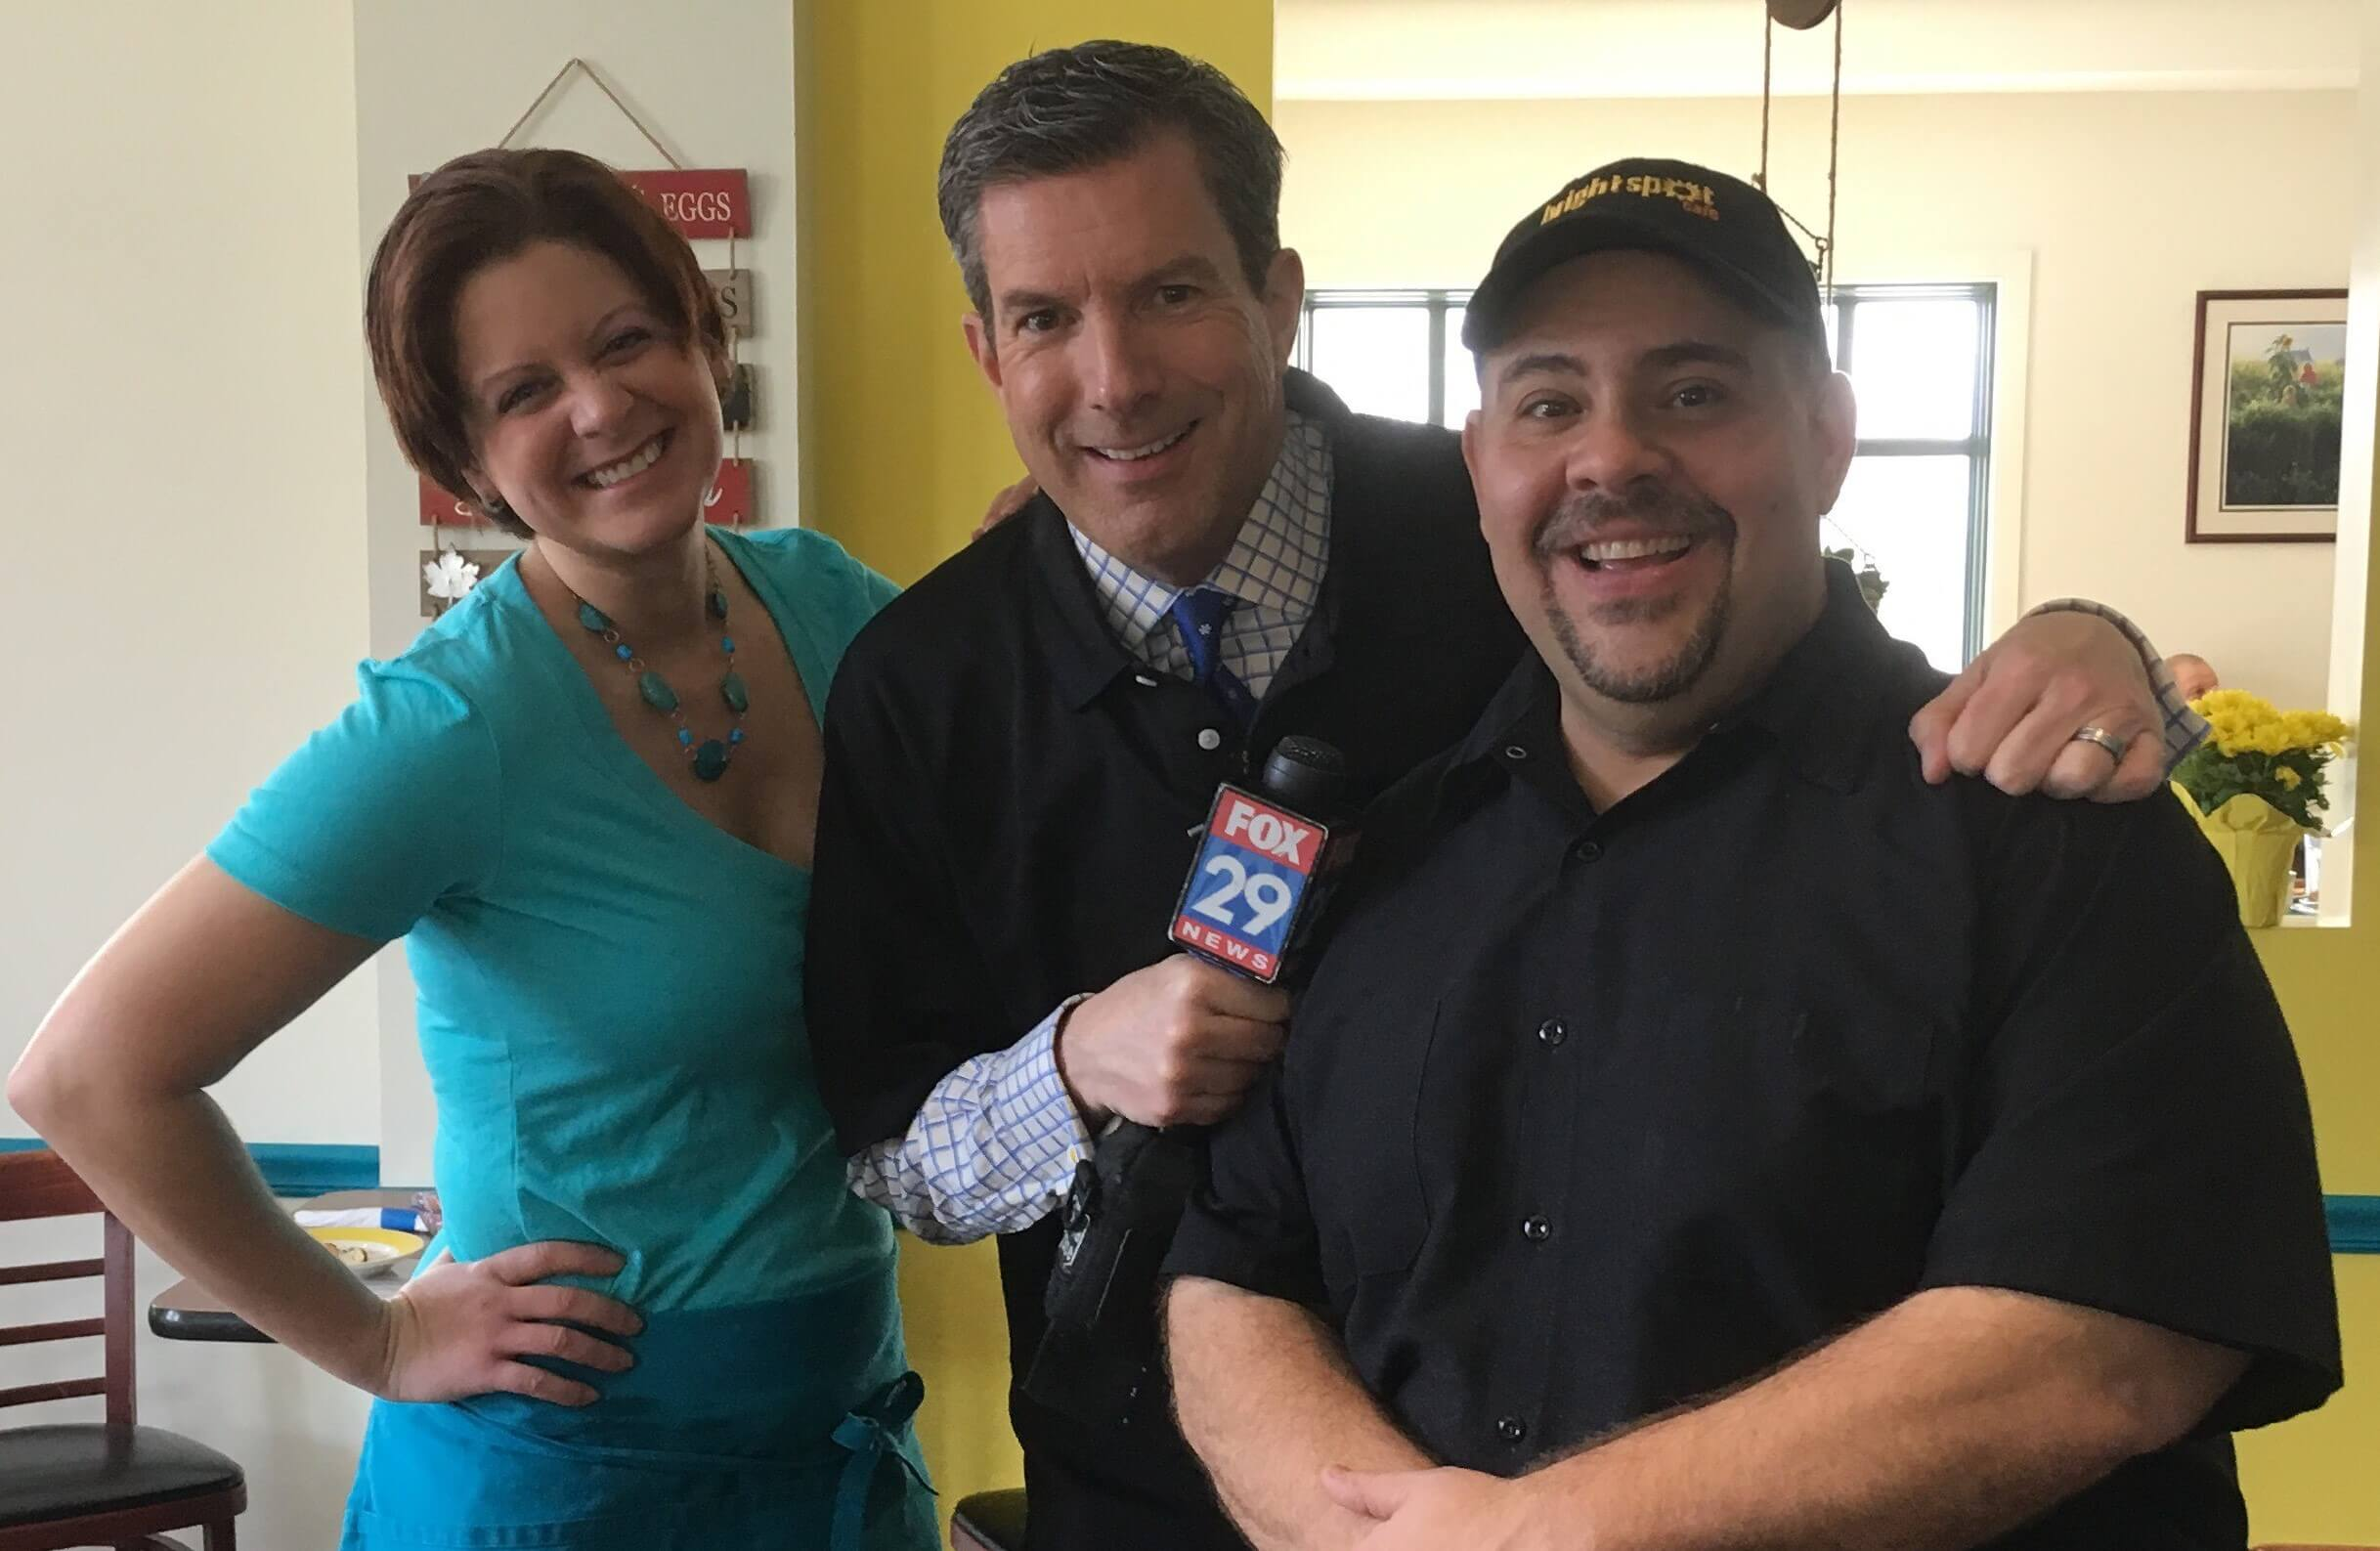 Fox 29's 'Breakfast with Bob' Broadcasts from New Bright Spot Café in Eagleview Town Center